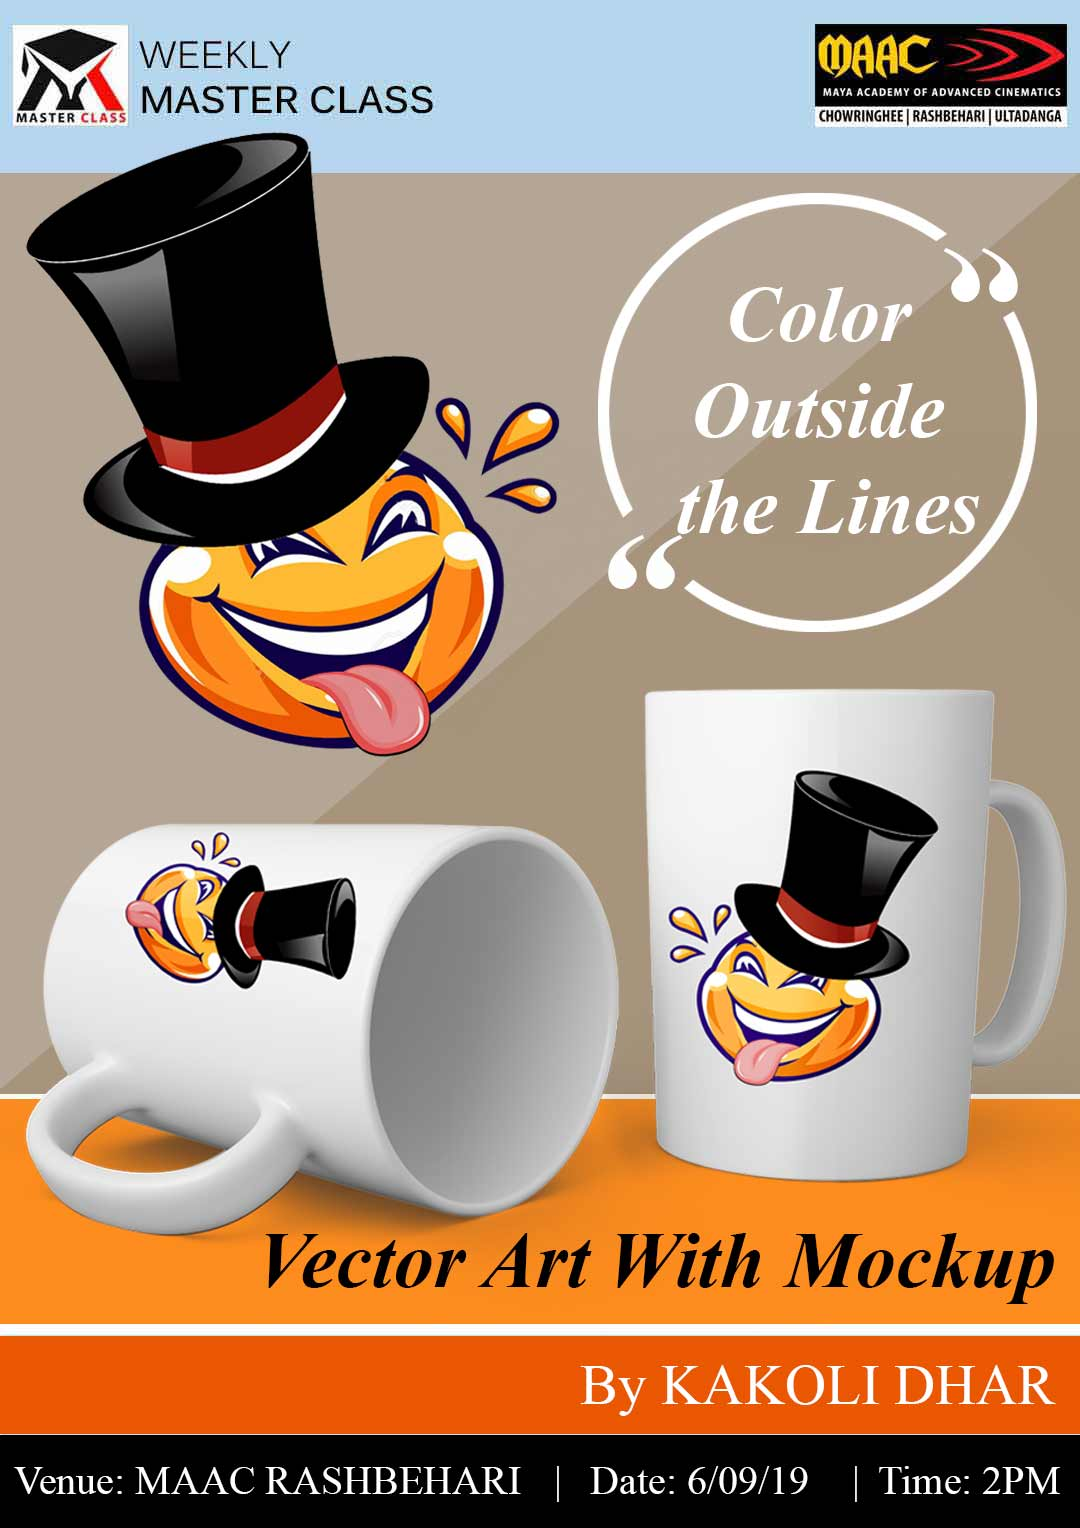 Weekly Master Class on Vector Art with Mockup